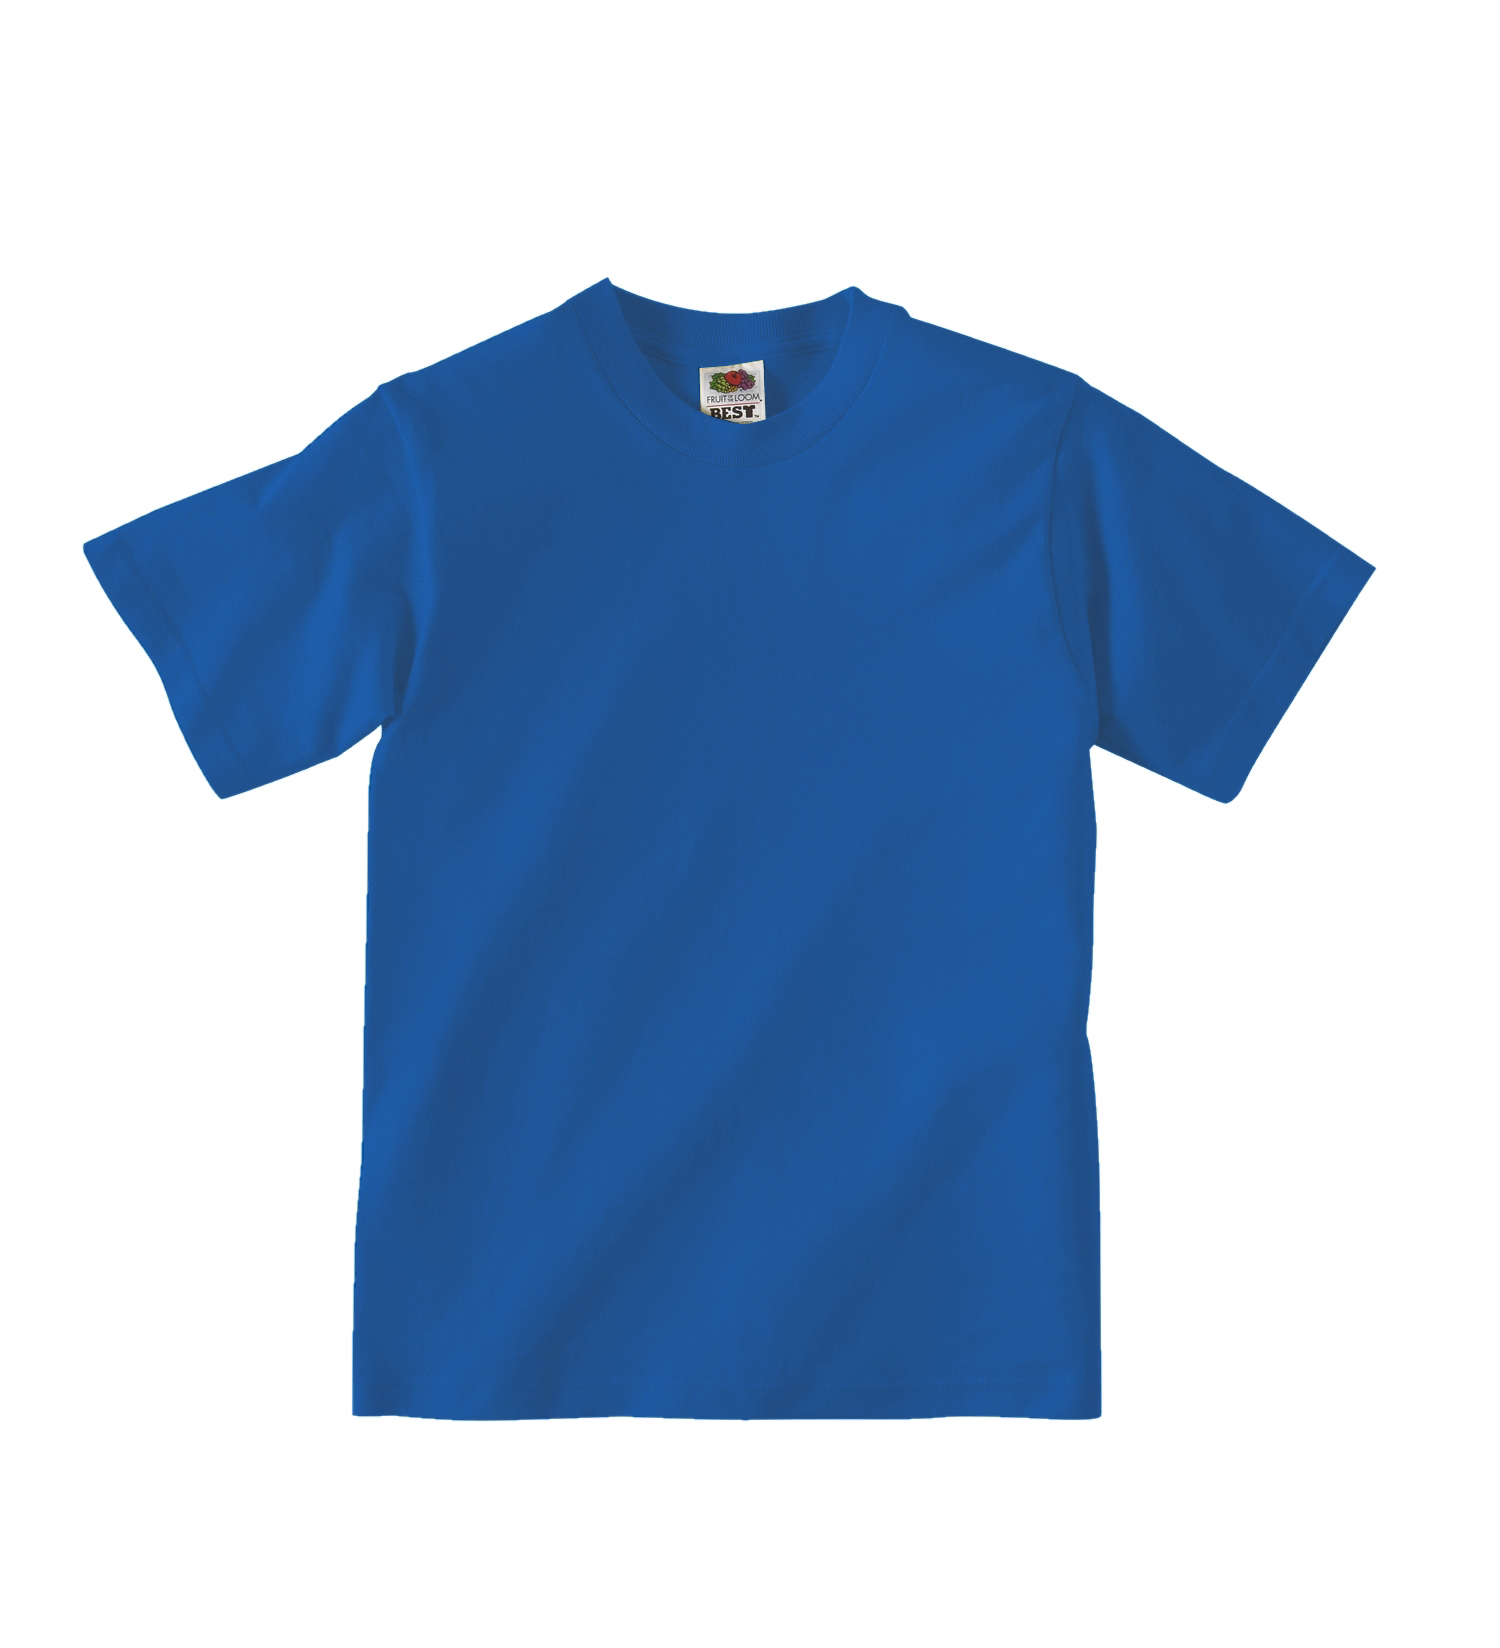 a56d1cd97f768d Fruit of the Loom Youth Best 5930B $2.69 - Youth's T-Shirts